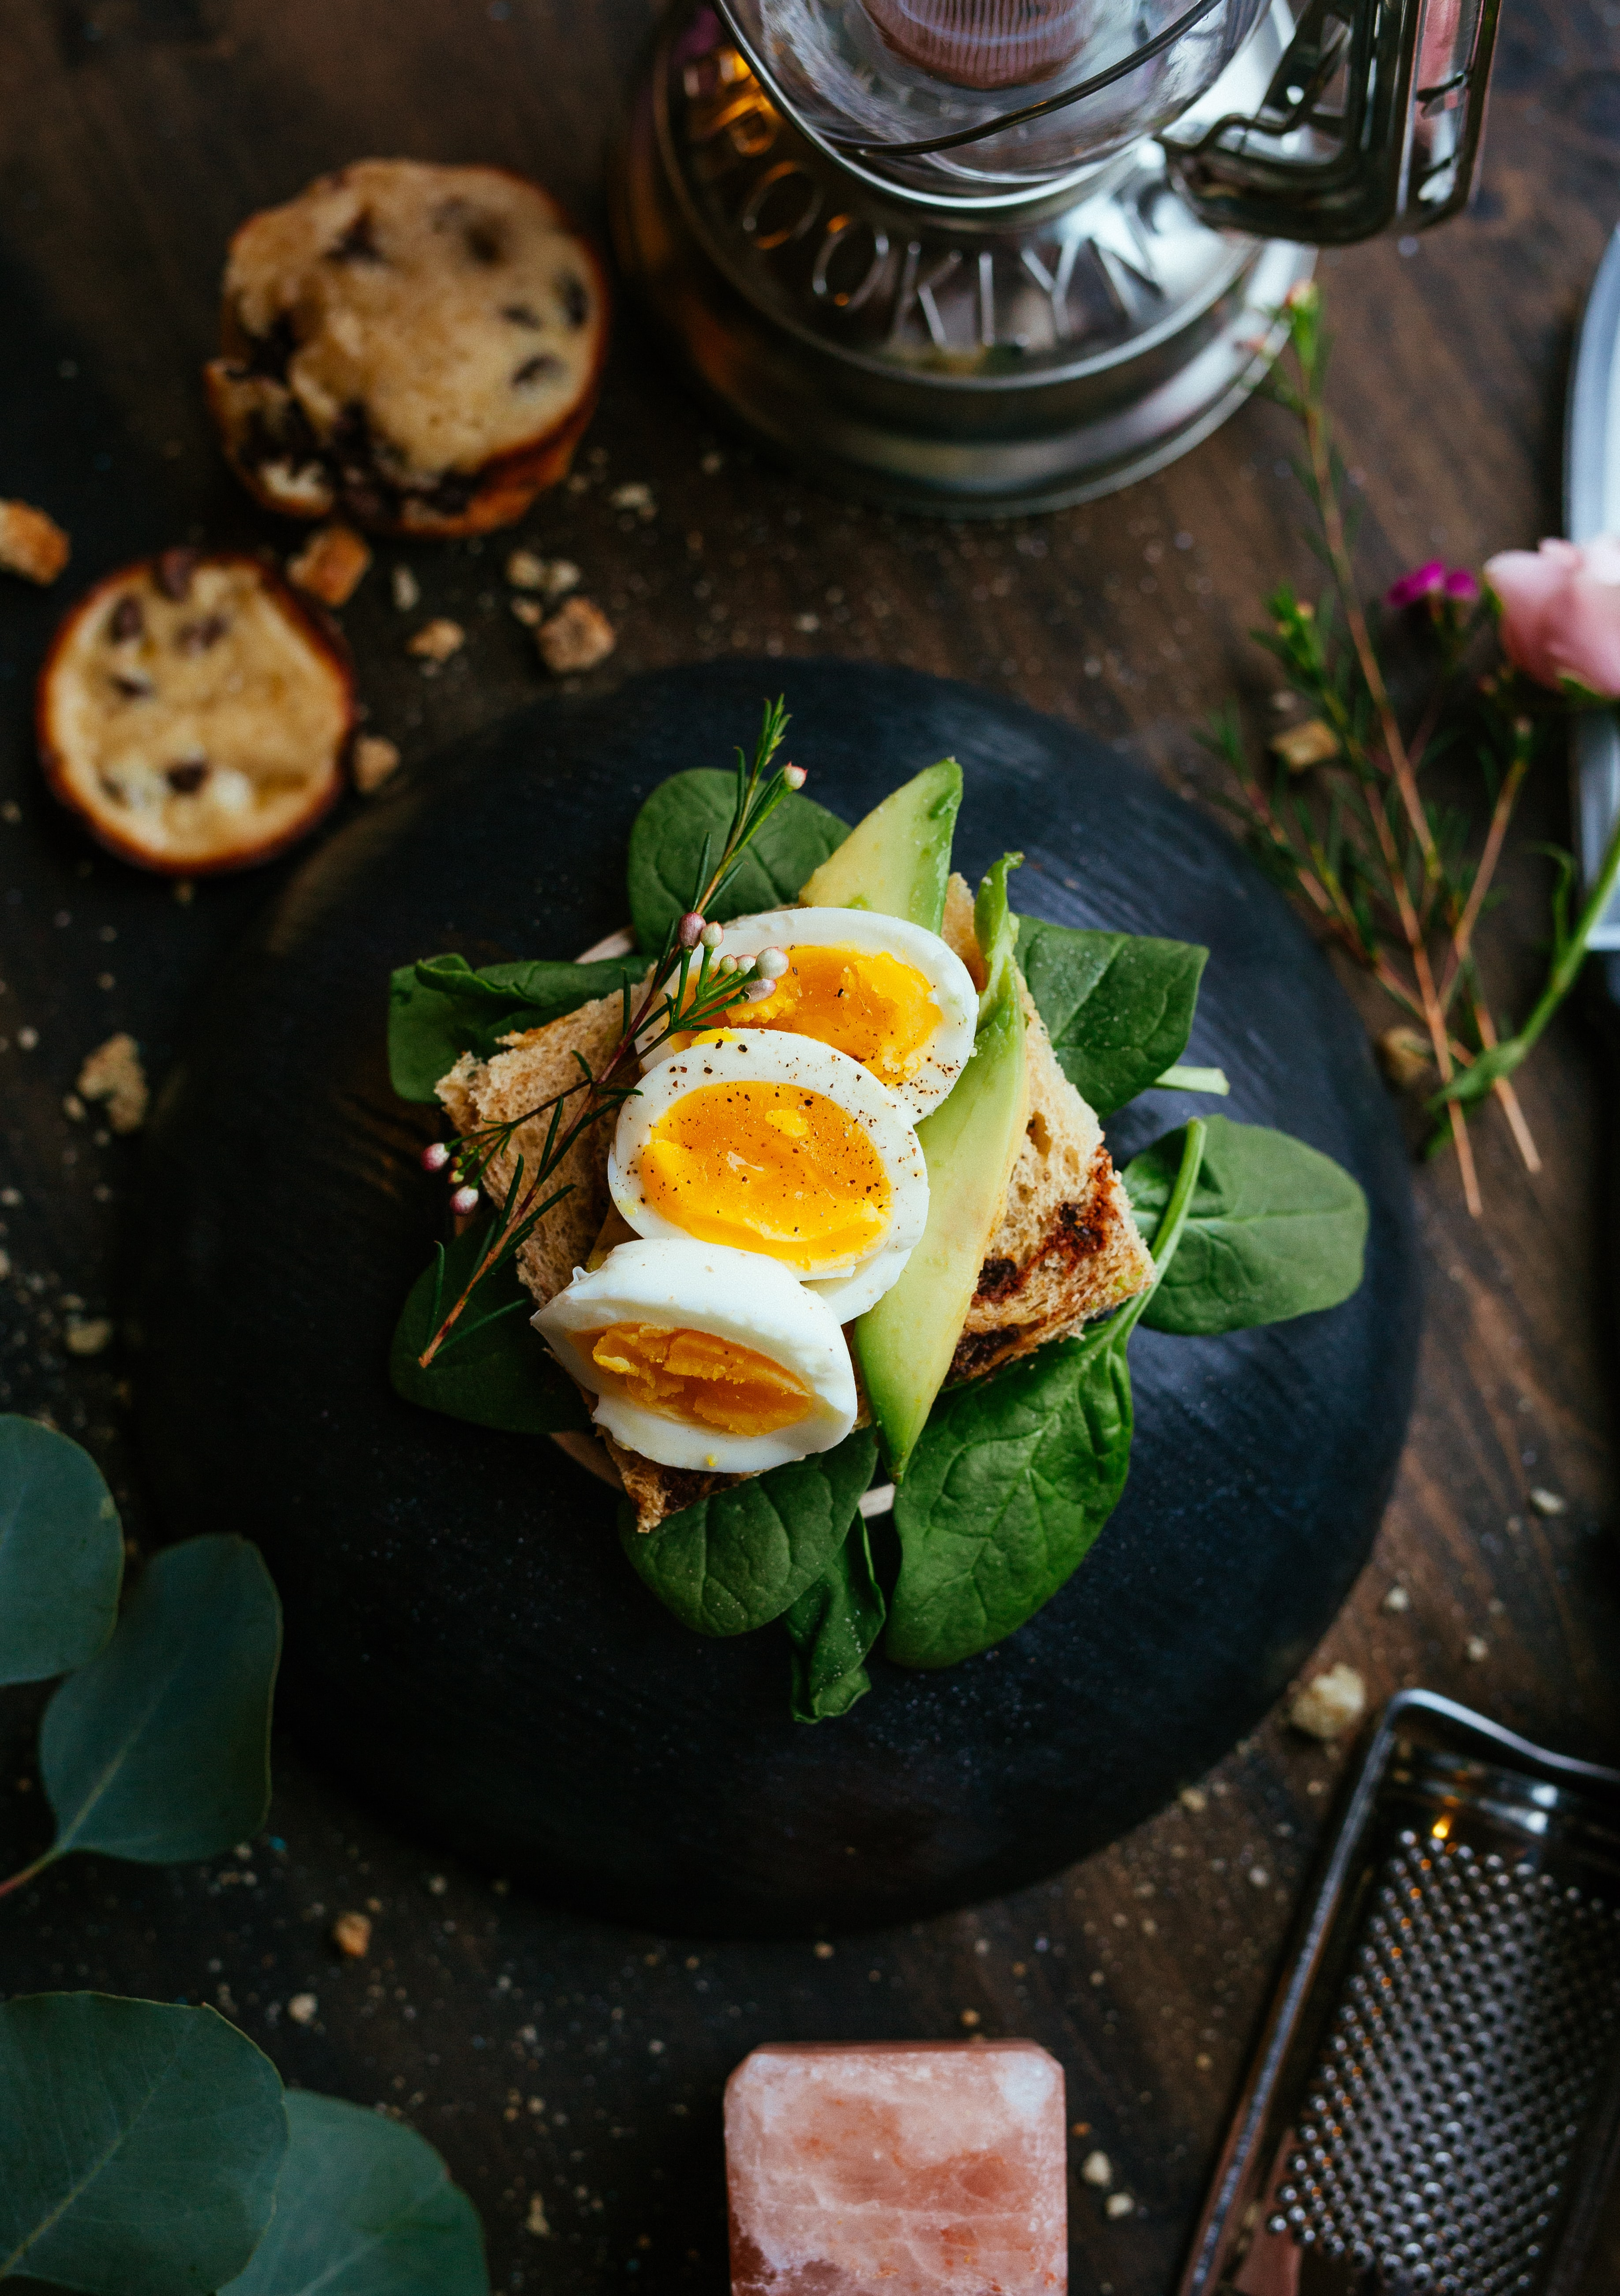 Avocado toast with egg and herbs on a rustic table